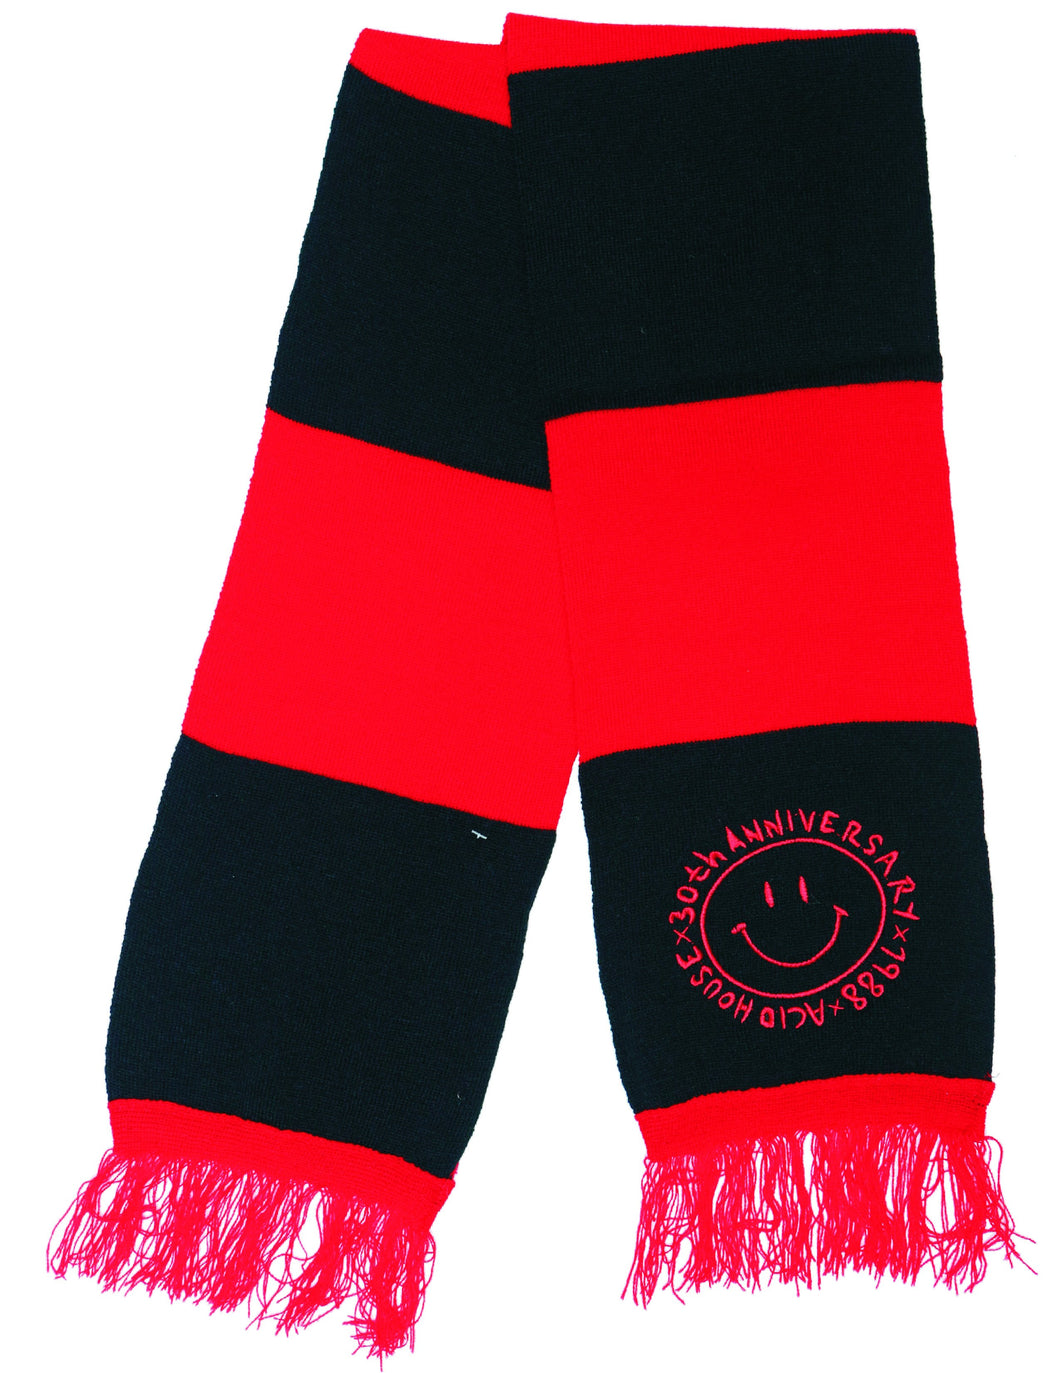 James Enox 1988 Scarf Black - Red